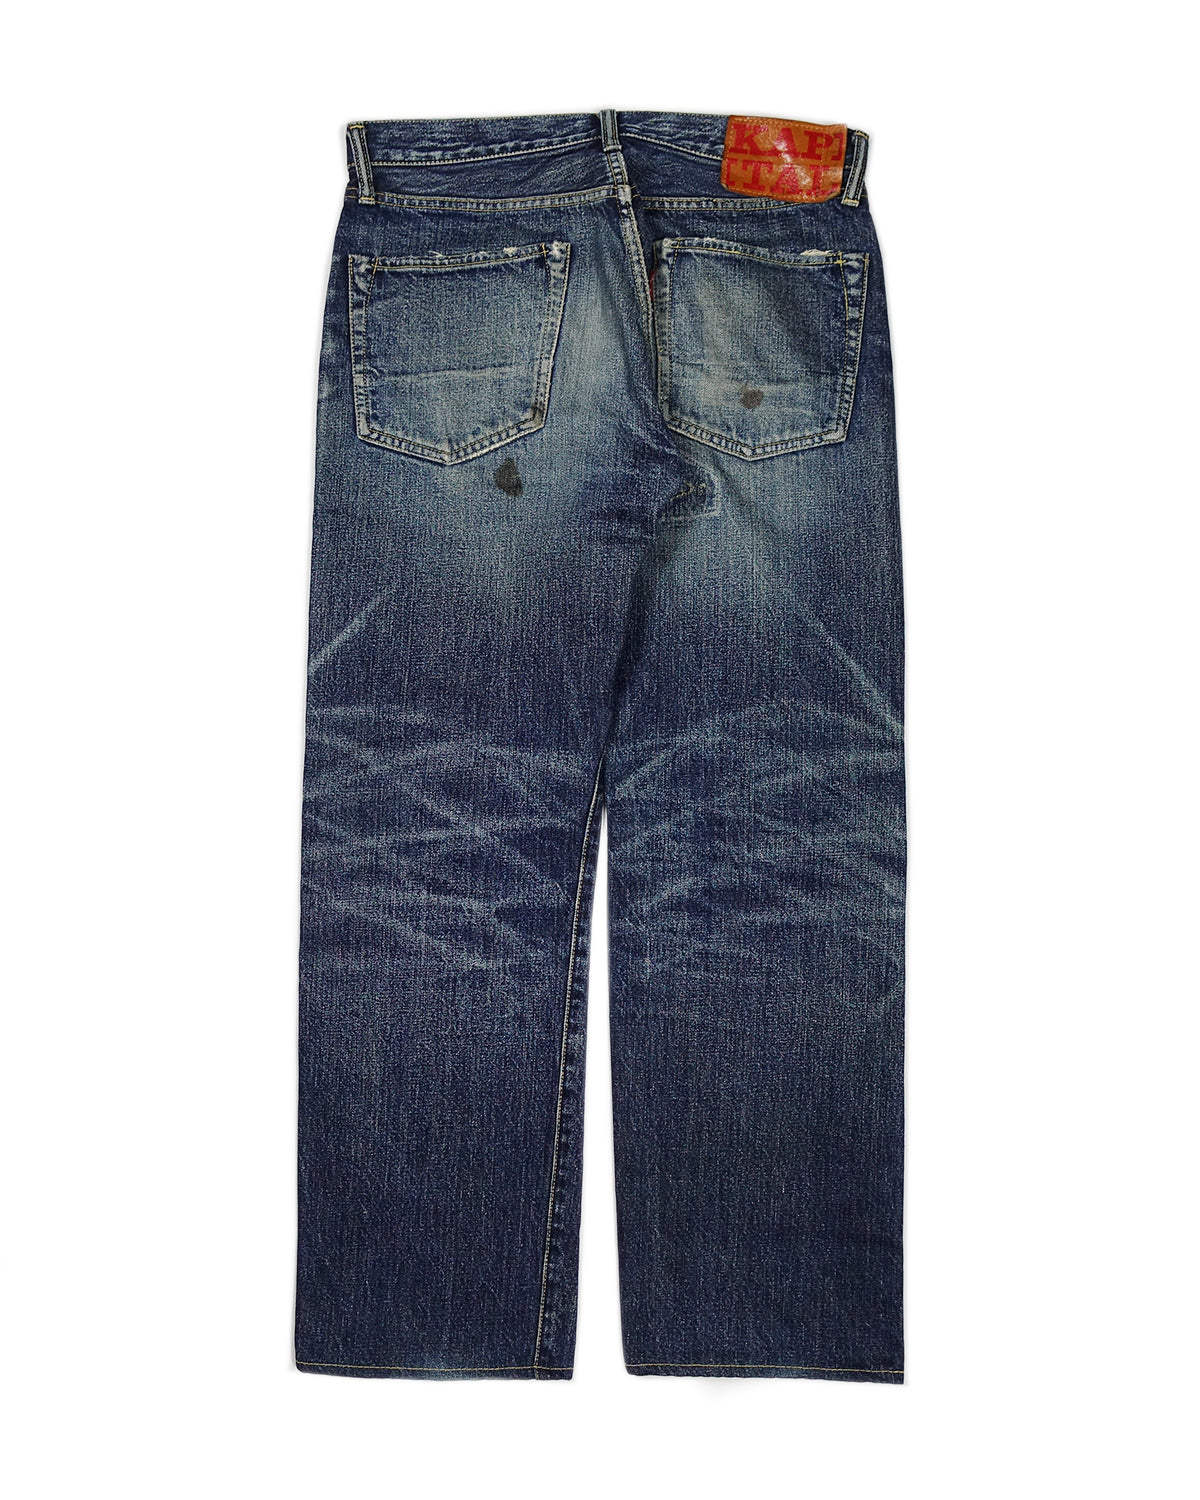 Kapital Sashiko Patchwork Repaired Denim 2000s